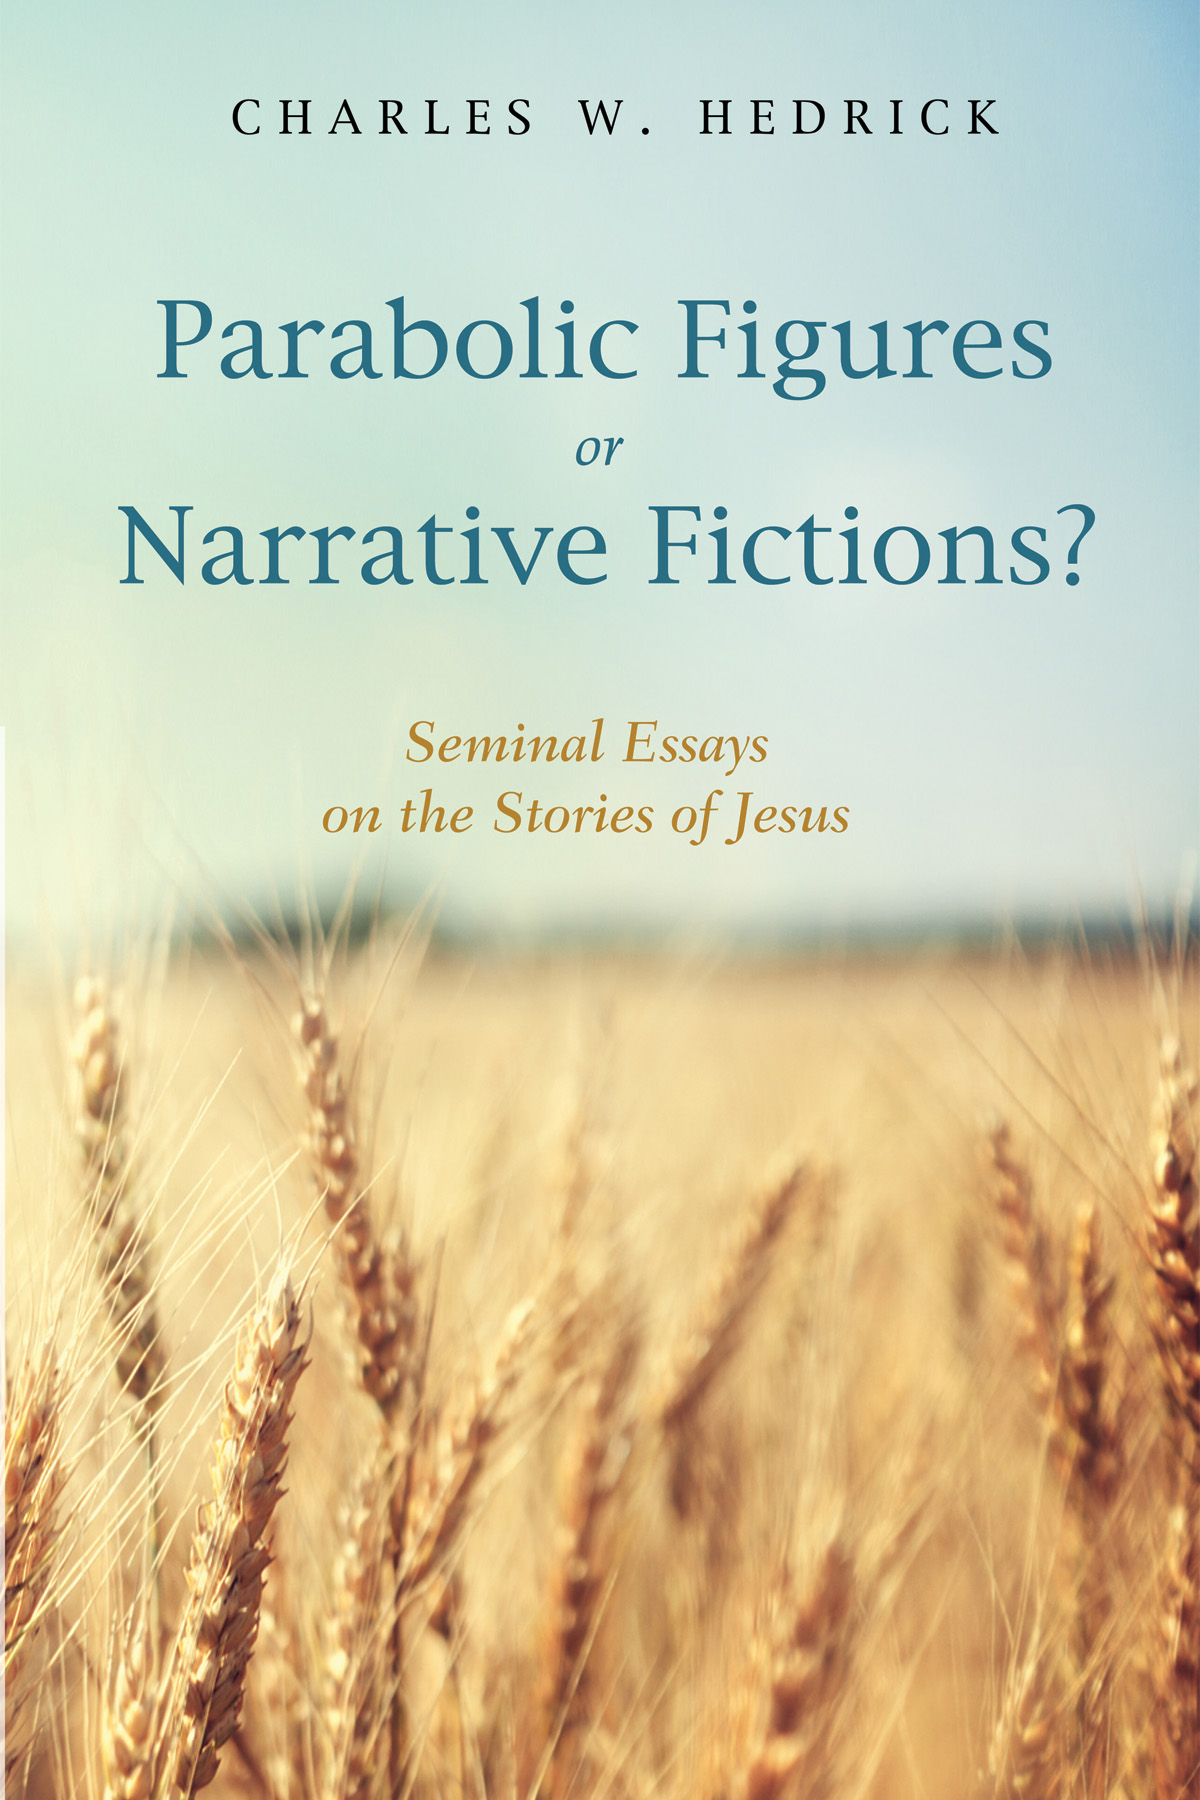 Charles Hedrick Publishes New Parables Book